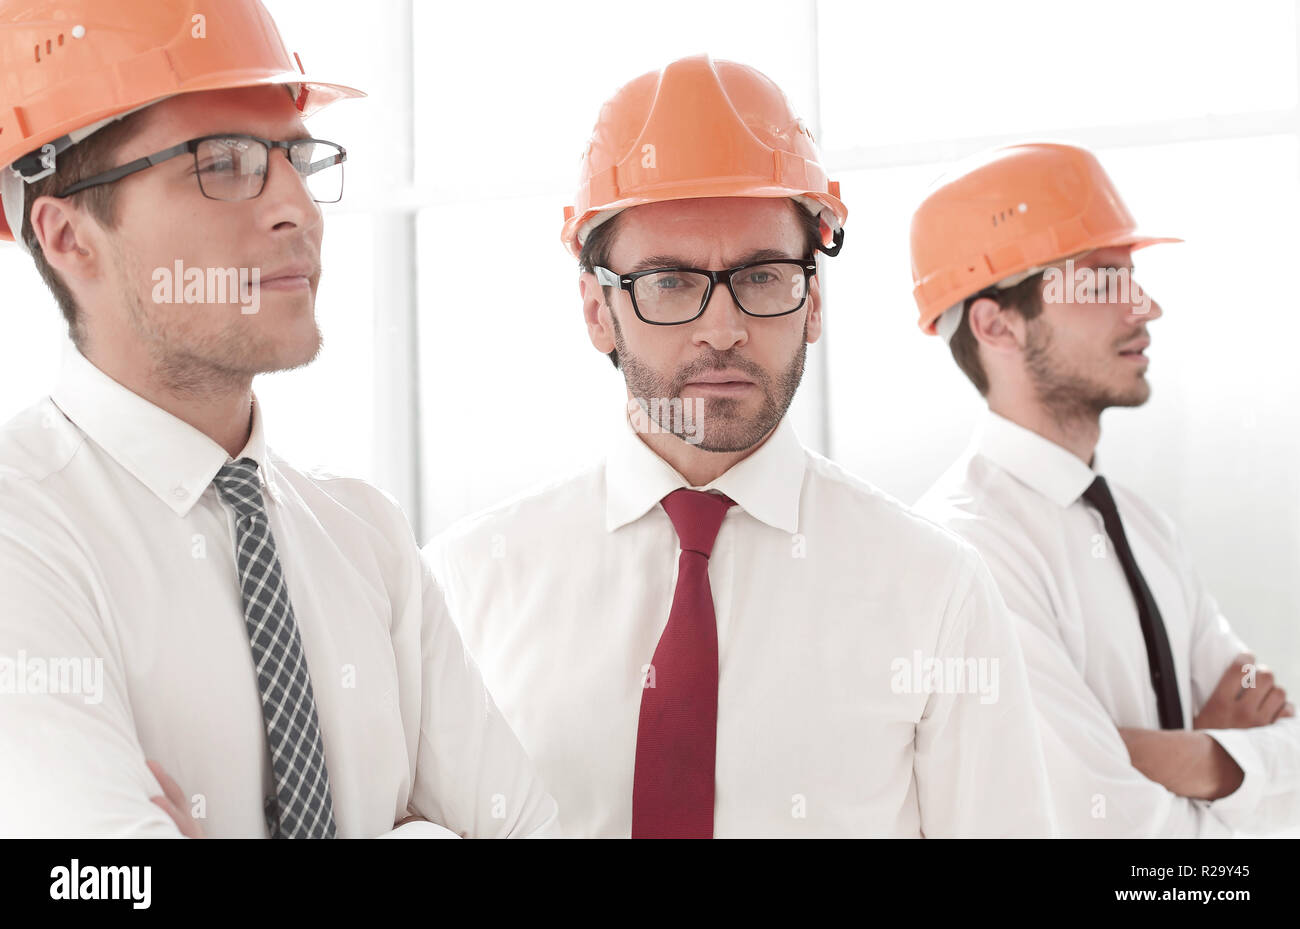 close up.group of architects and designers - Stock Image